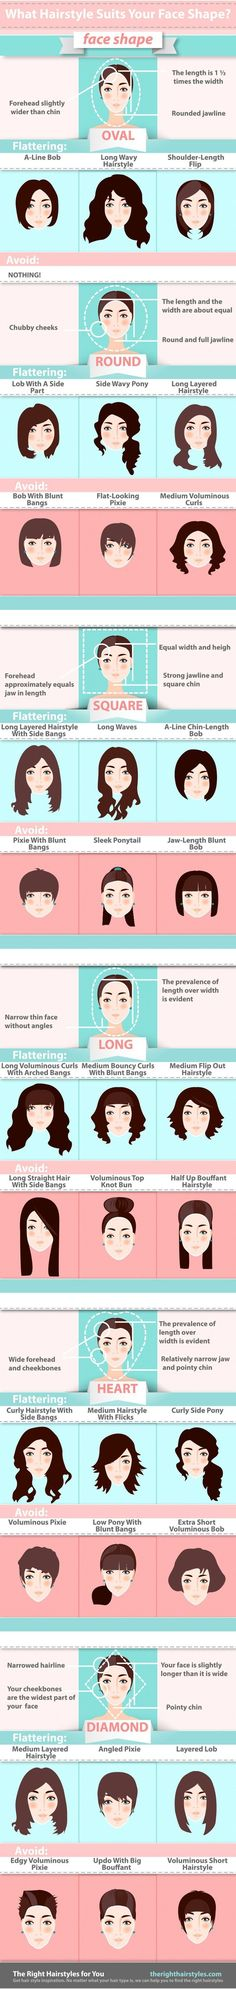 Guide: The Perfect Hairstyle For Your Face Shape